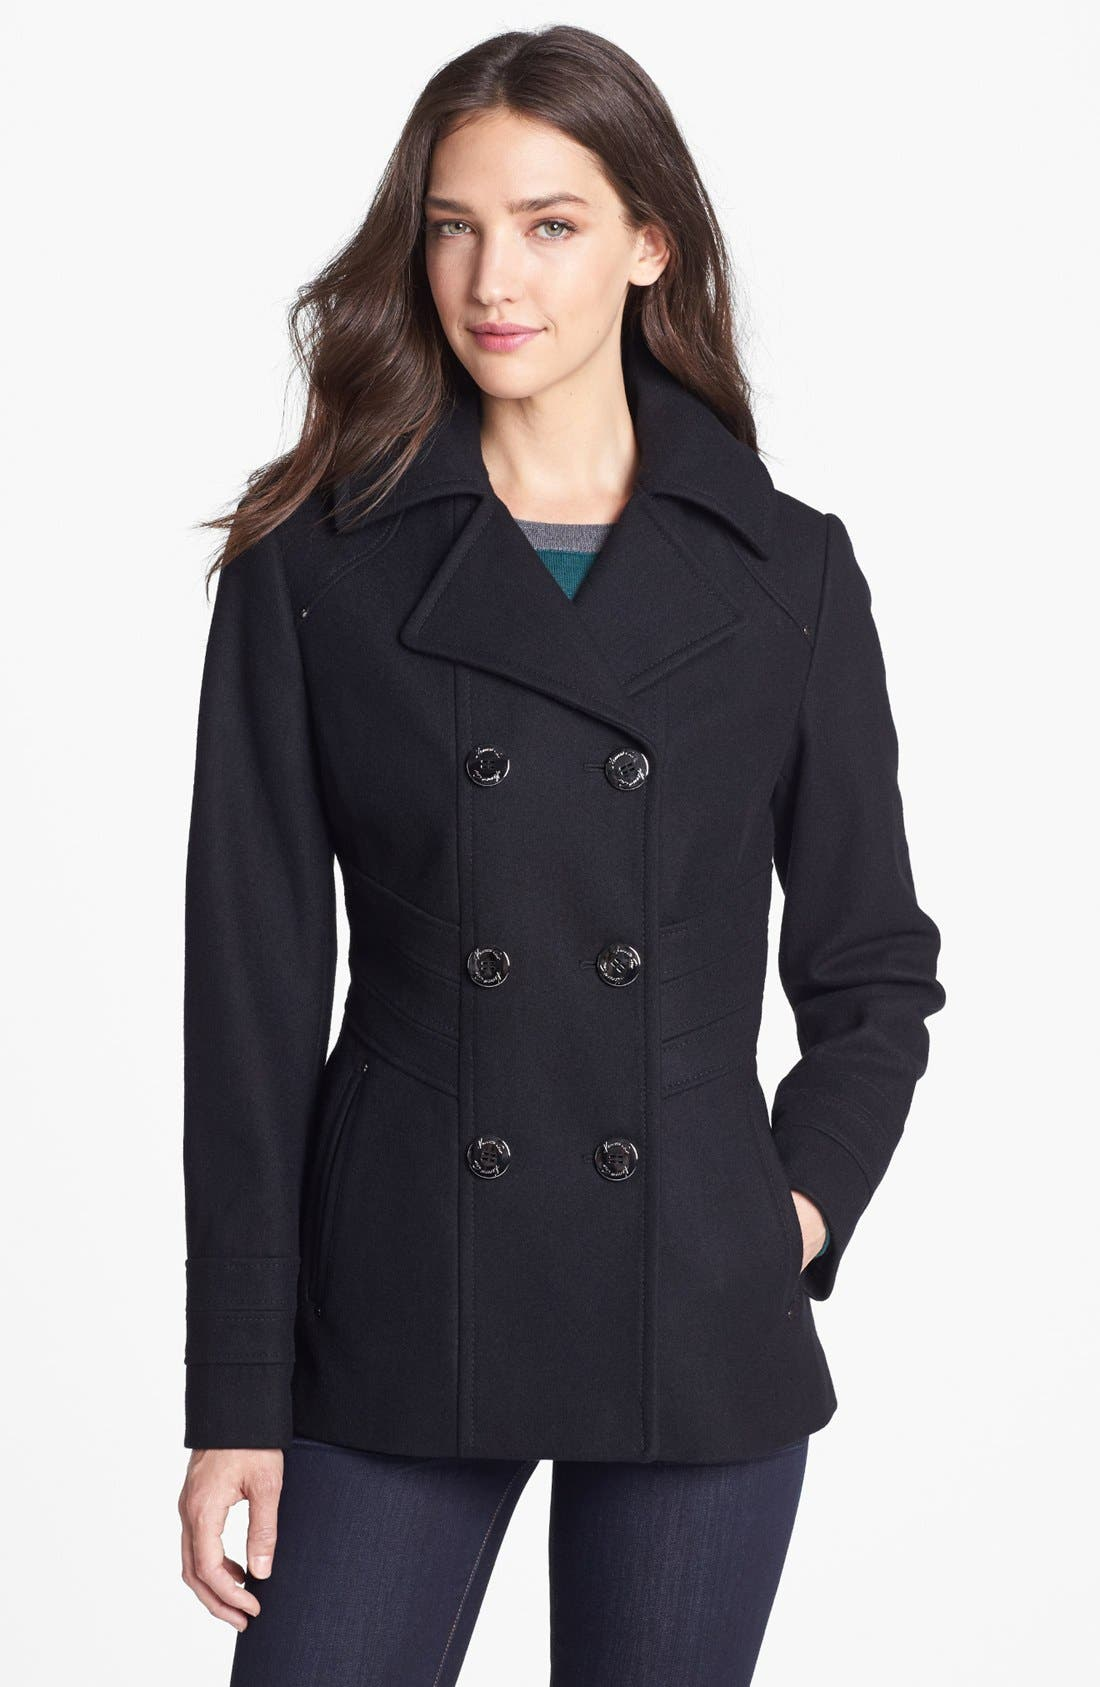 Main Image - Kenneth Cole New York Paneled Waist Peacoat (Regular & Petite)